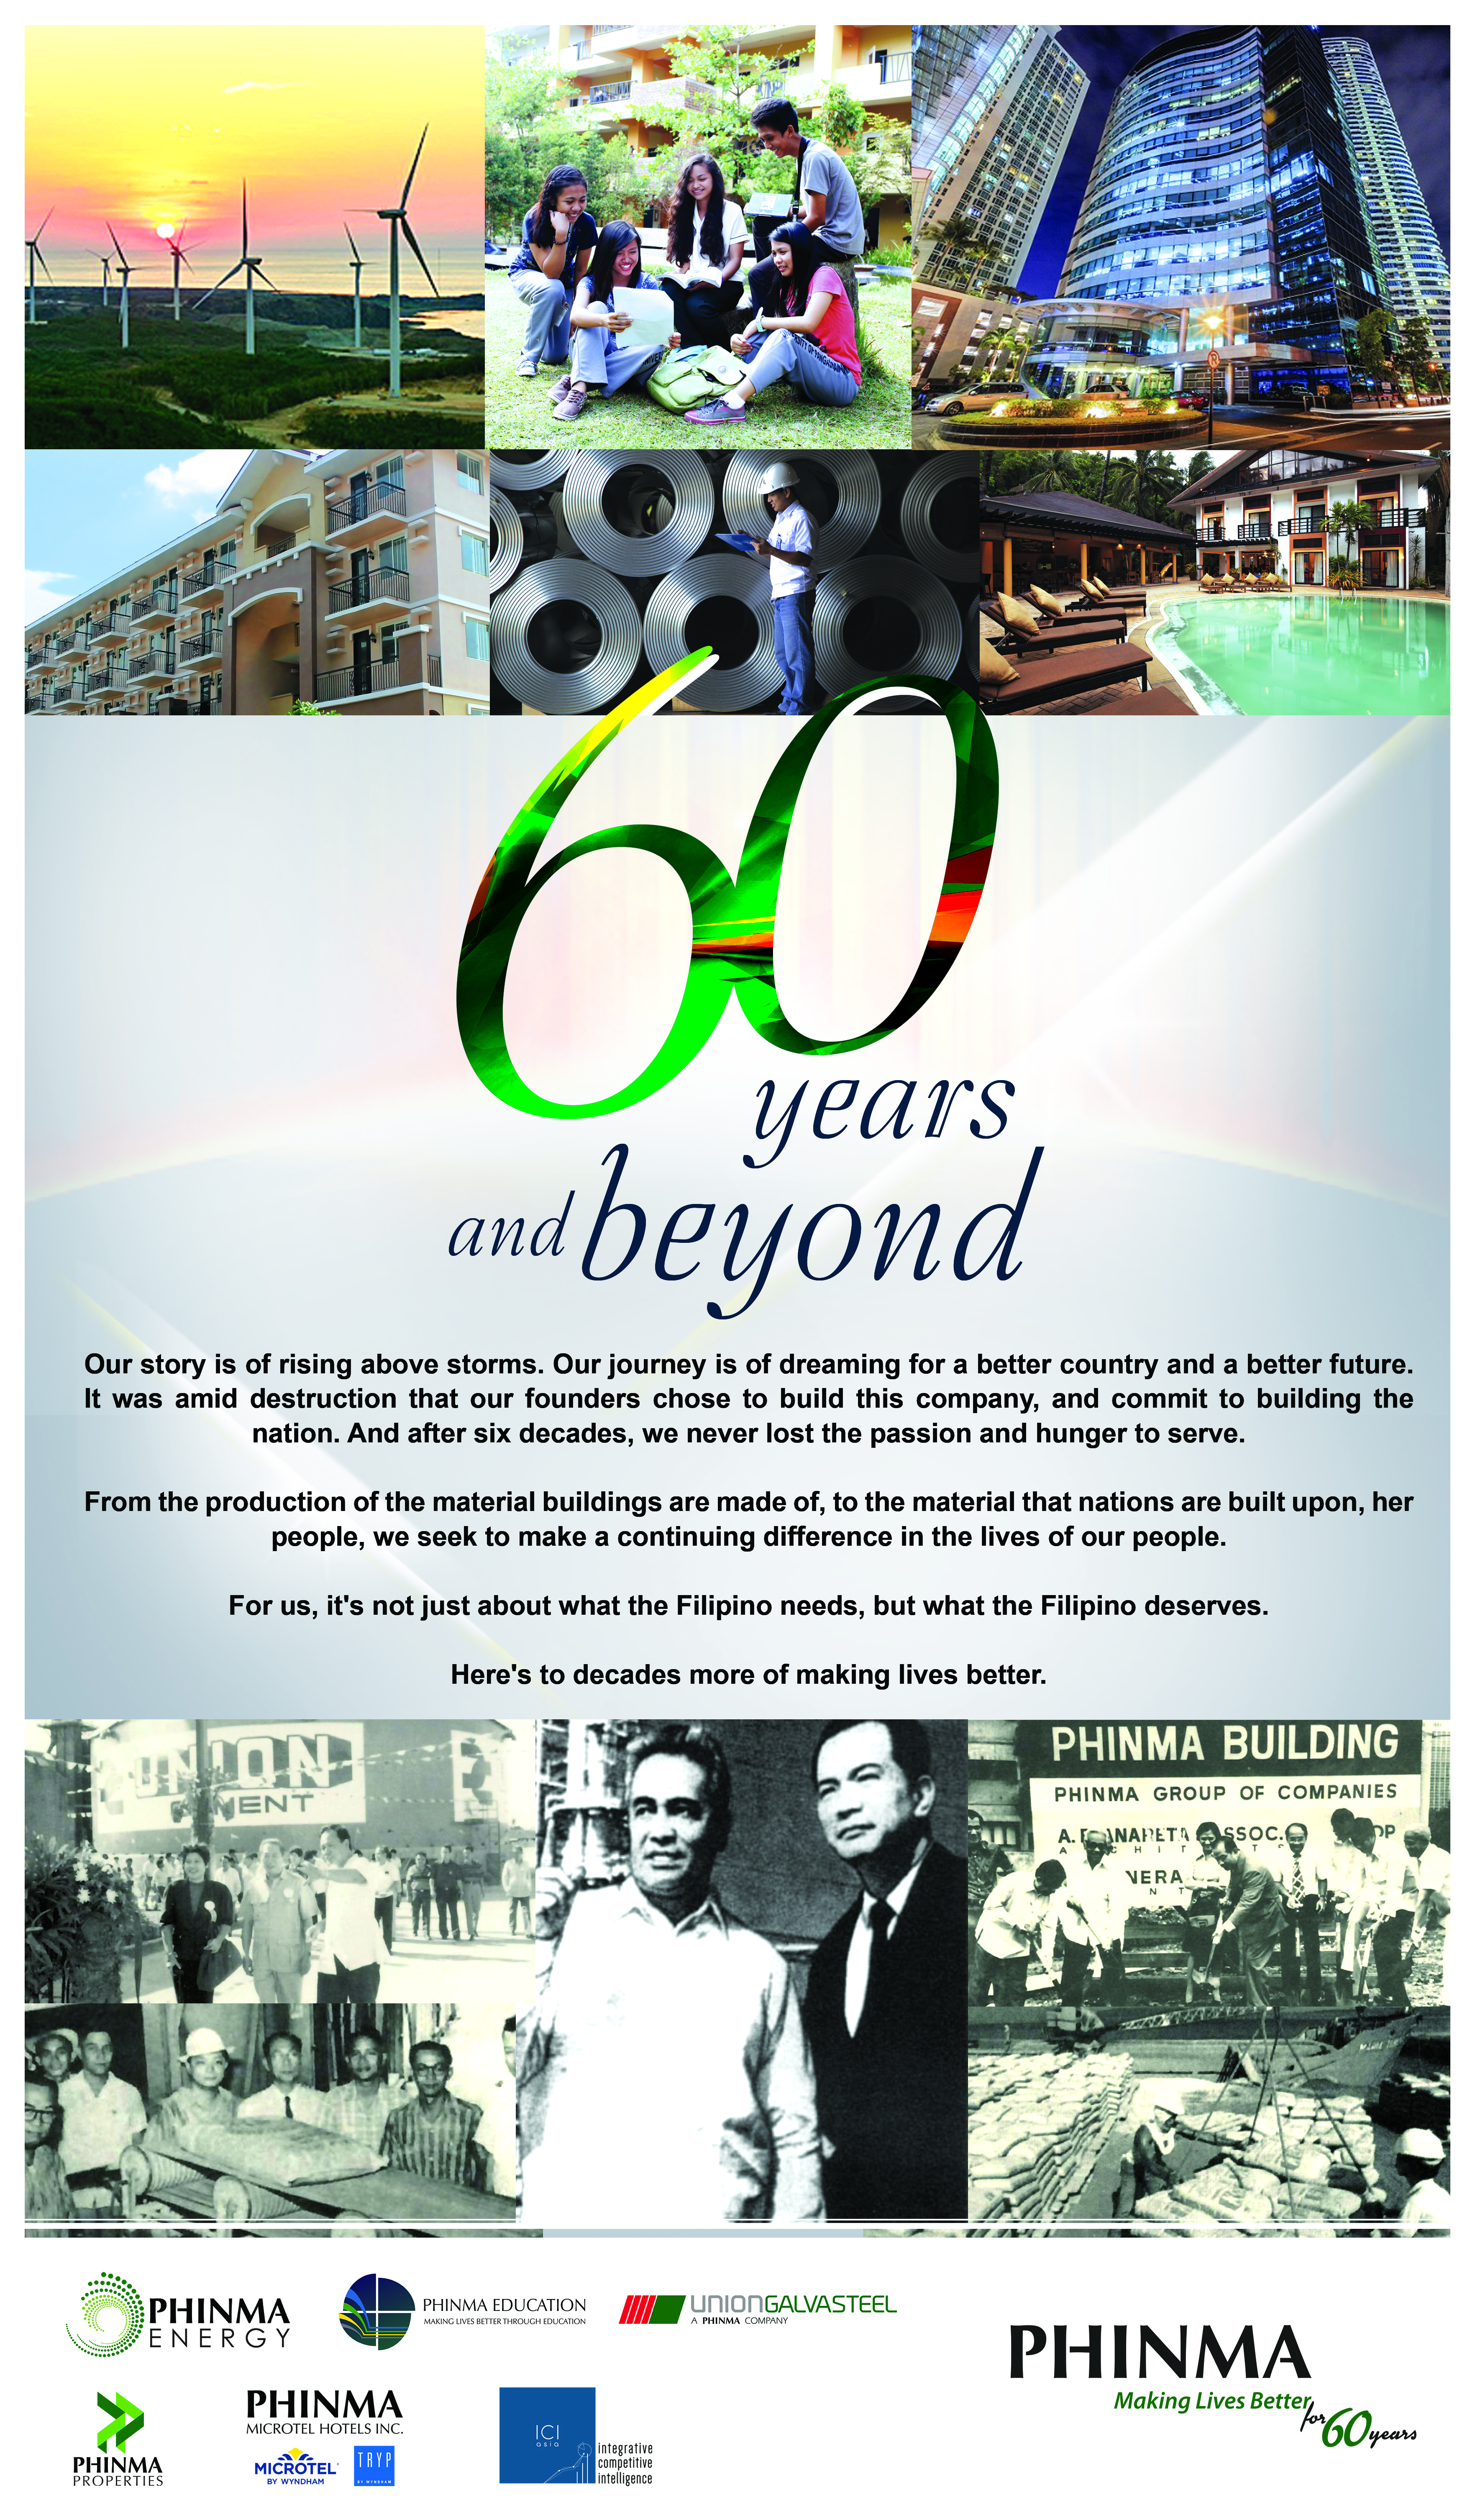 PHINMA for 60 Omnibus Print Ad & Poster artwork